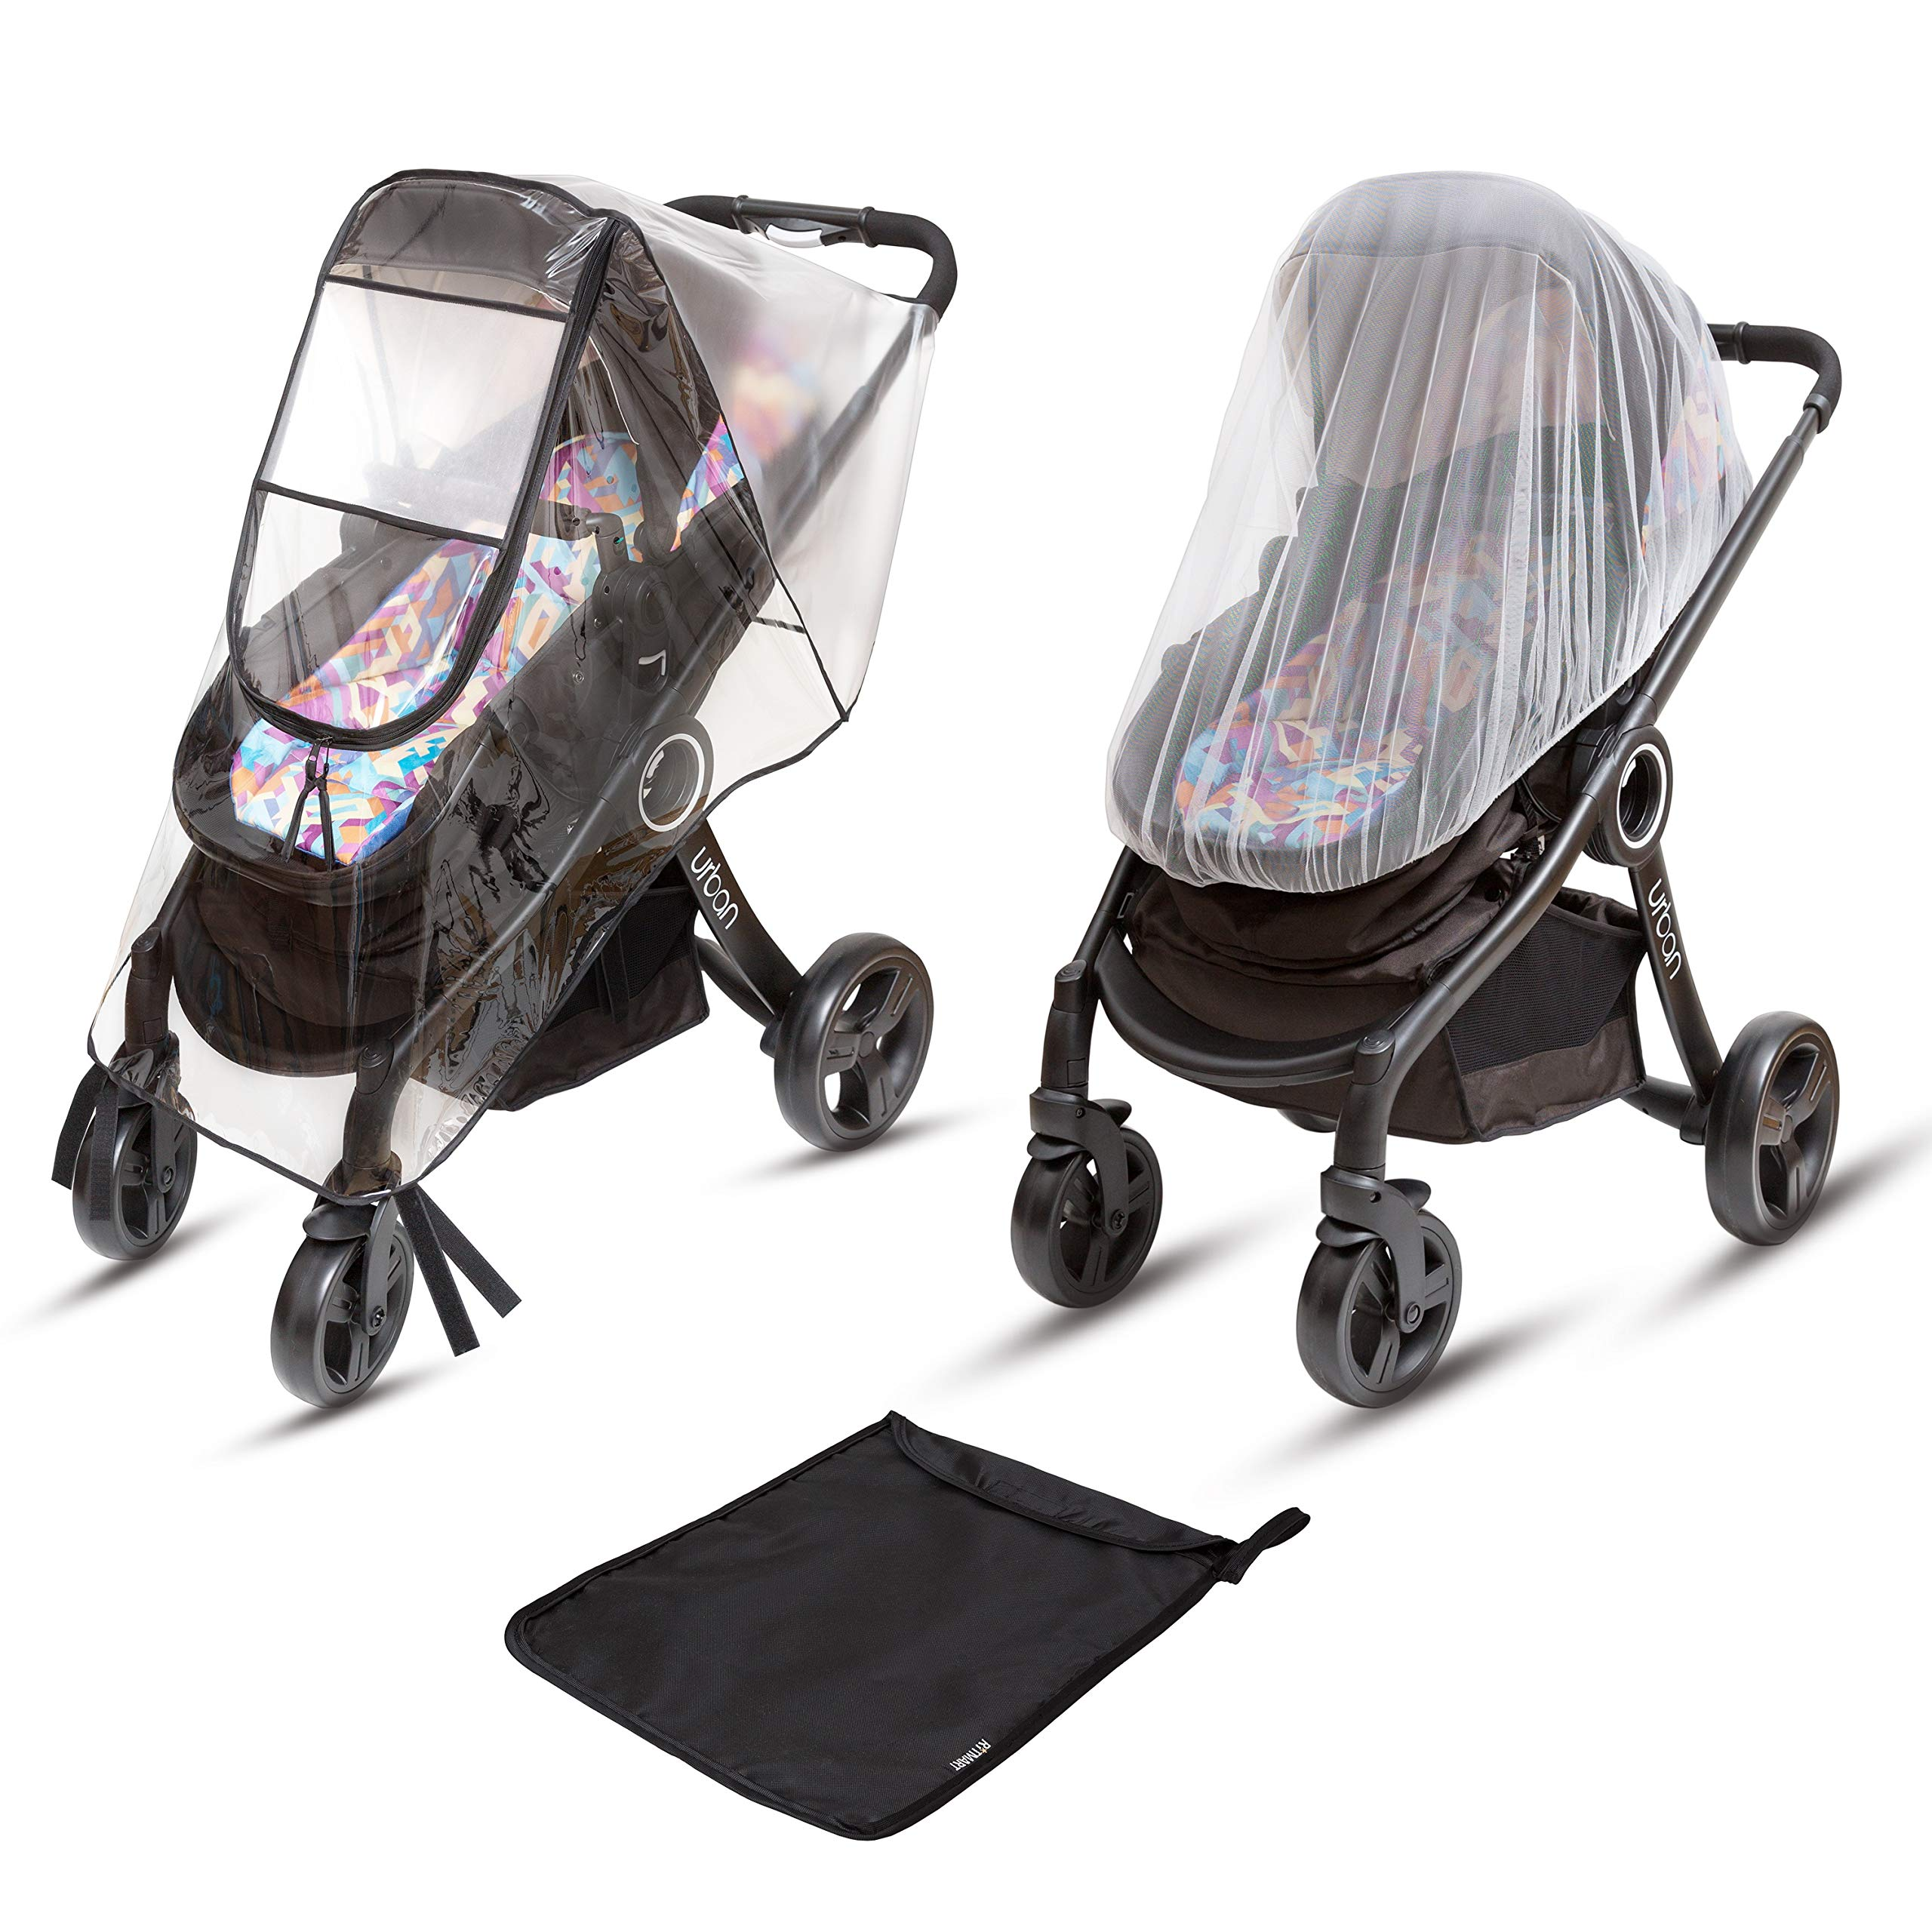 Ritmart Baby Stroller Rain Cover Universal + Mosquito Net (2-Piece Set), Waterproof, Windproof & Ventilation, Premium Travel Weather Shield Accessories, Shower Gift by Ritmart